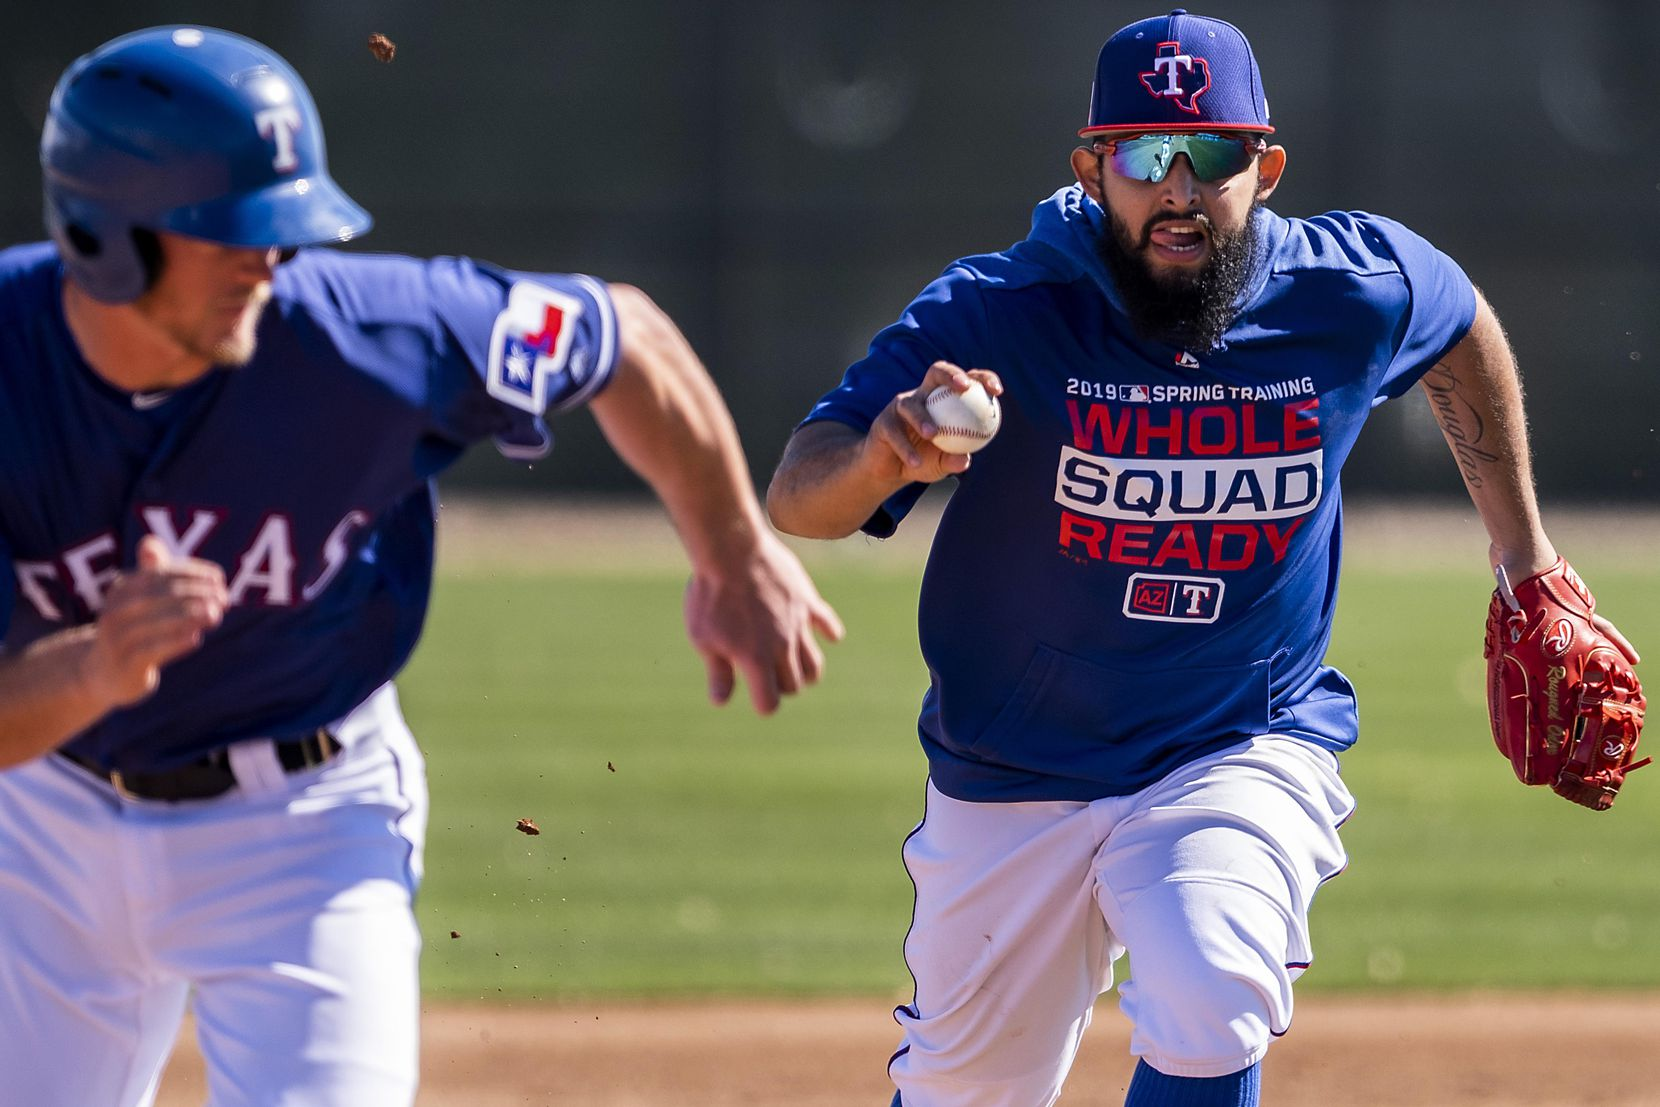 Texas Rangers second baseman Rougned Odor chases down minor-leaguer Alex Kowalczyk during a fielding drill on Feb. 19 at the team's spring training facility in Surprise, Ariz.